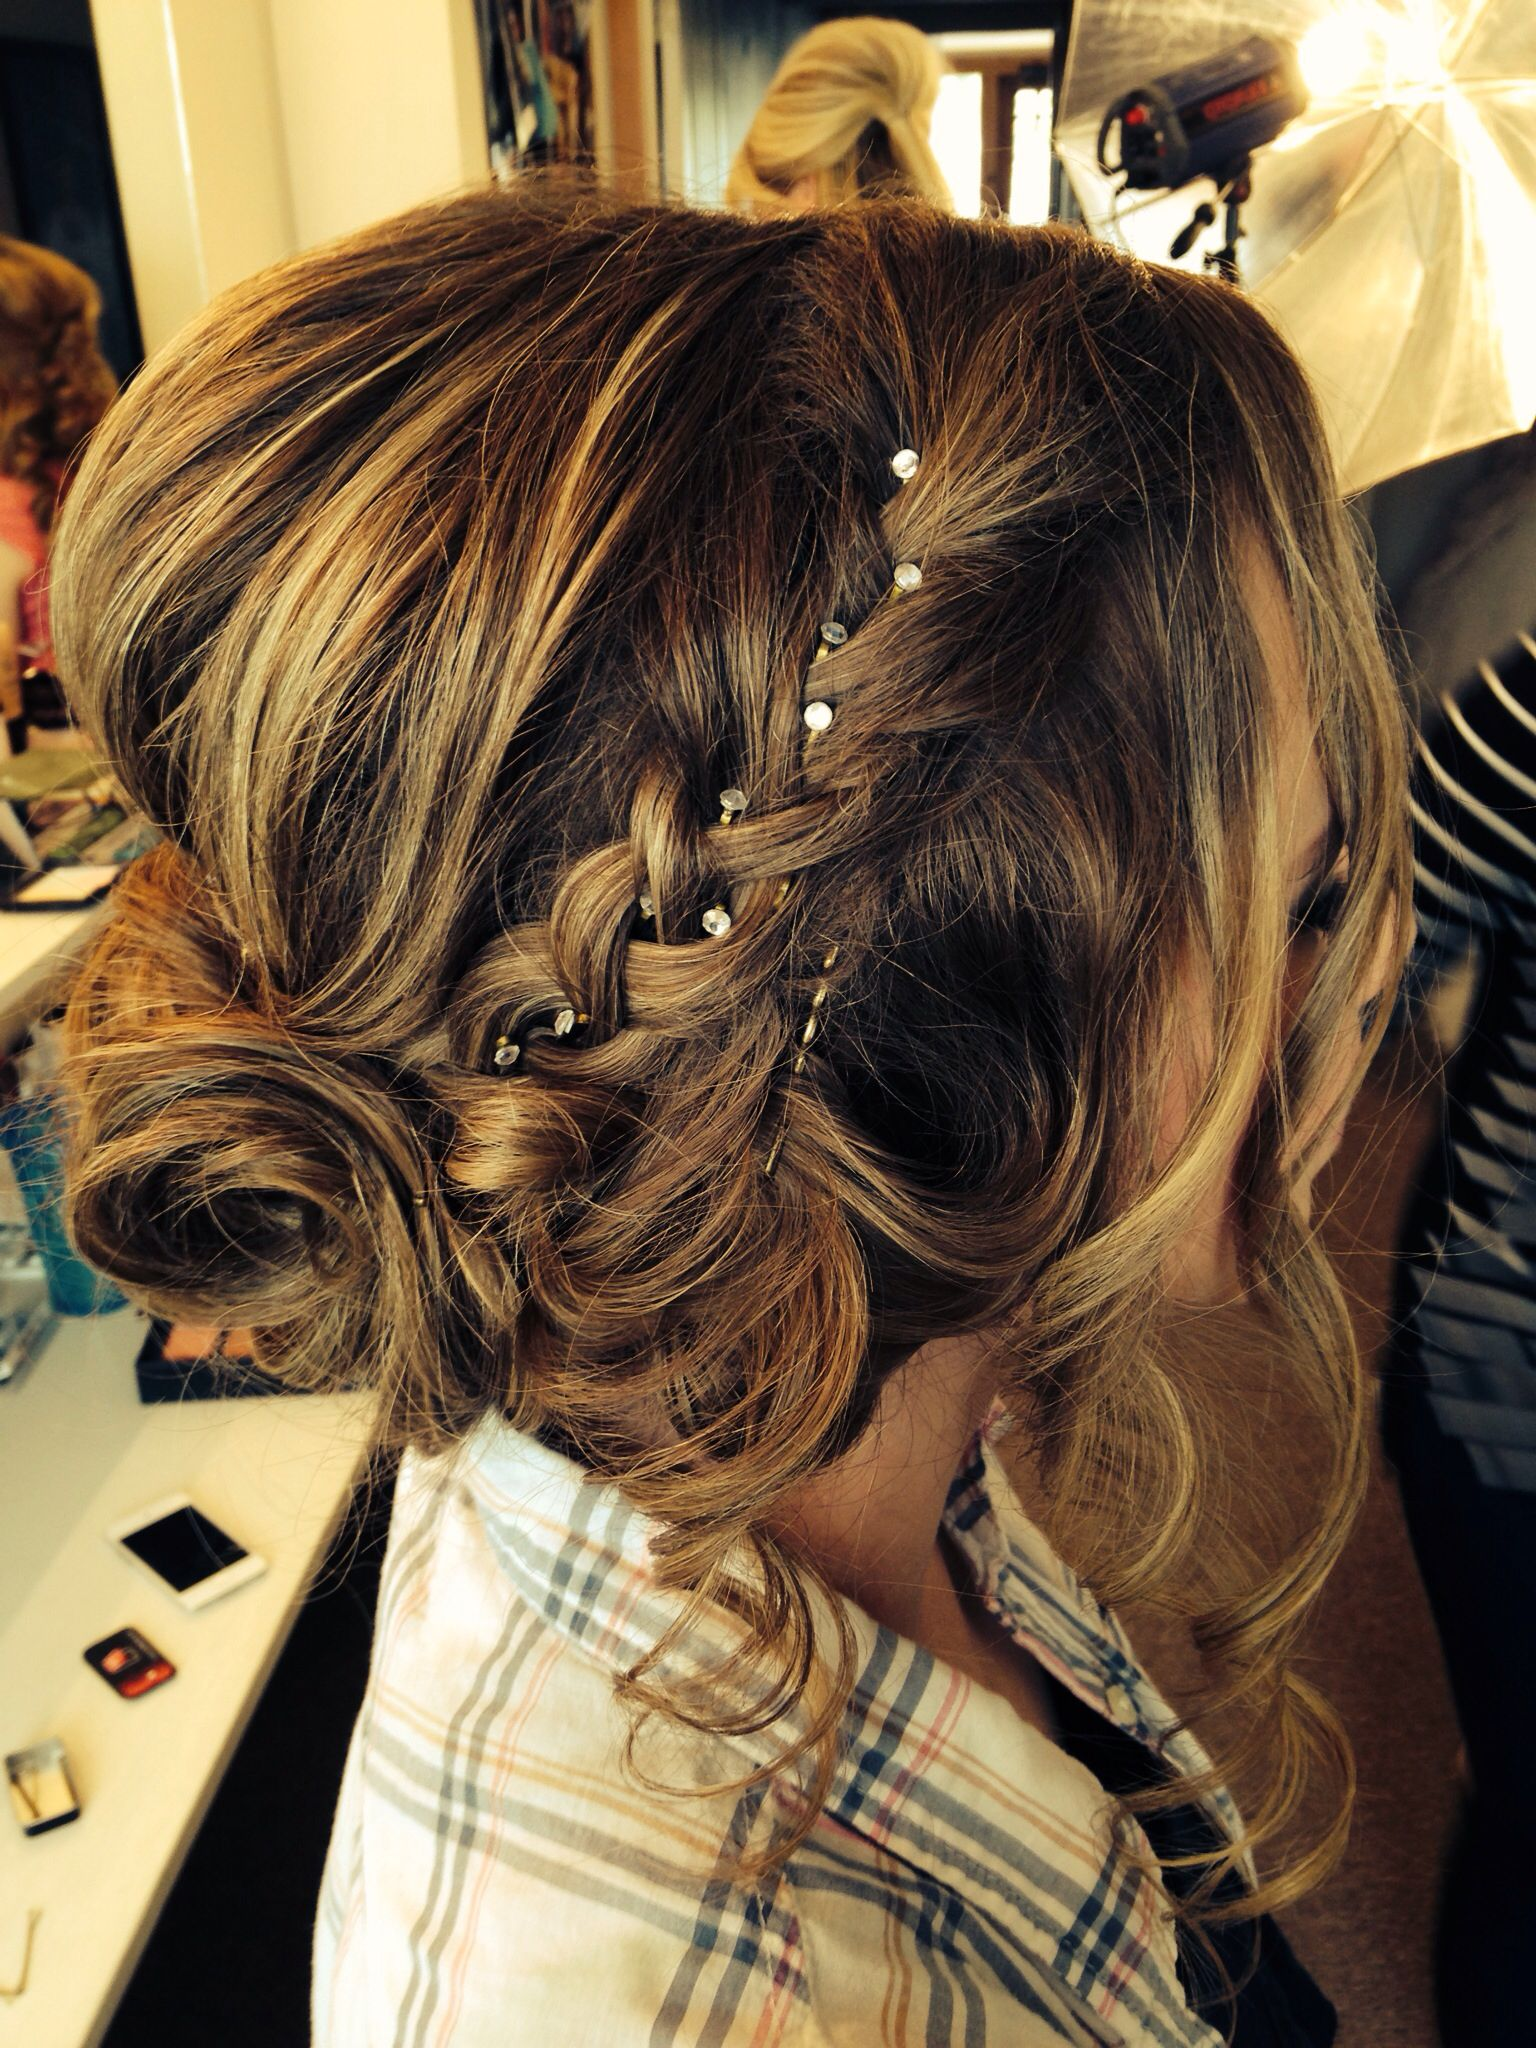 Pin By Kimberly Pedre On Everything Prom Hair Styles Hair Up Styles Hair Styles 2014